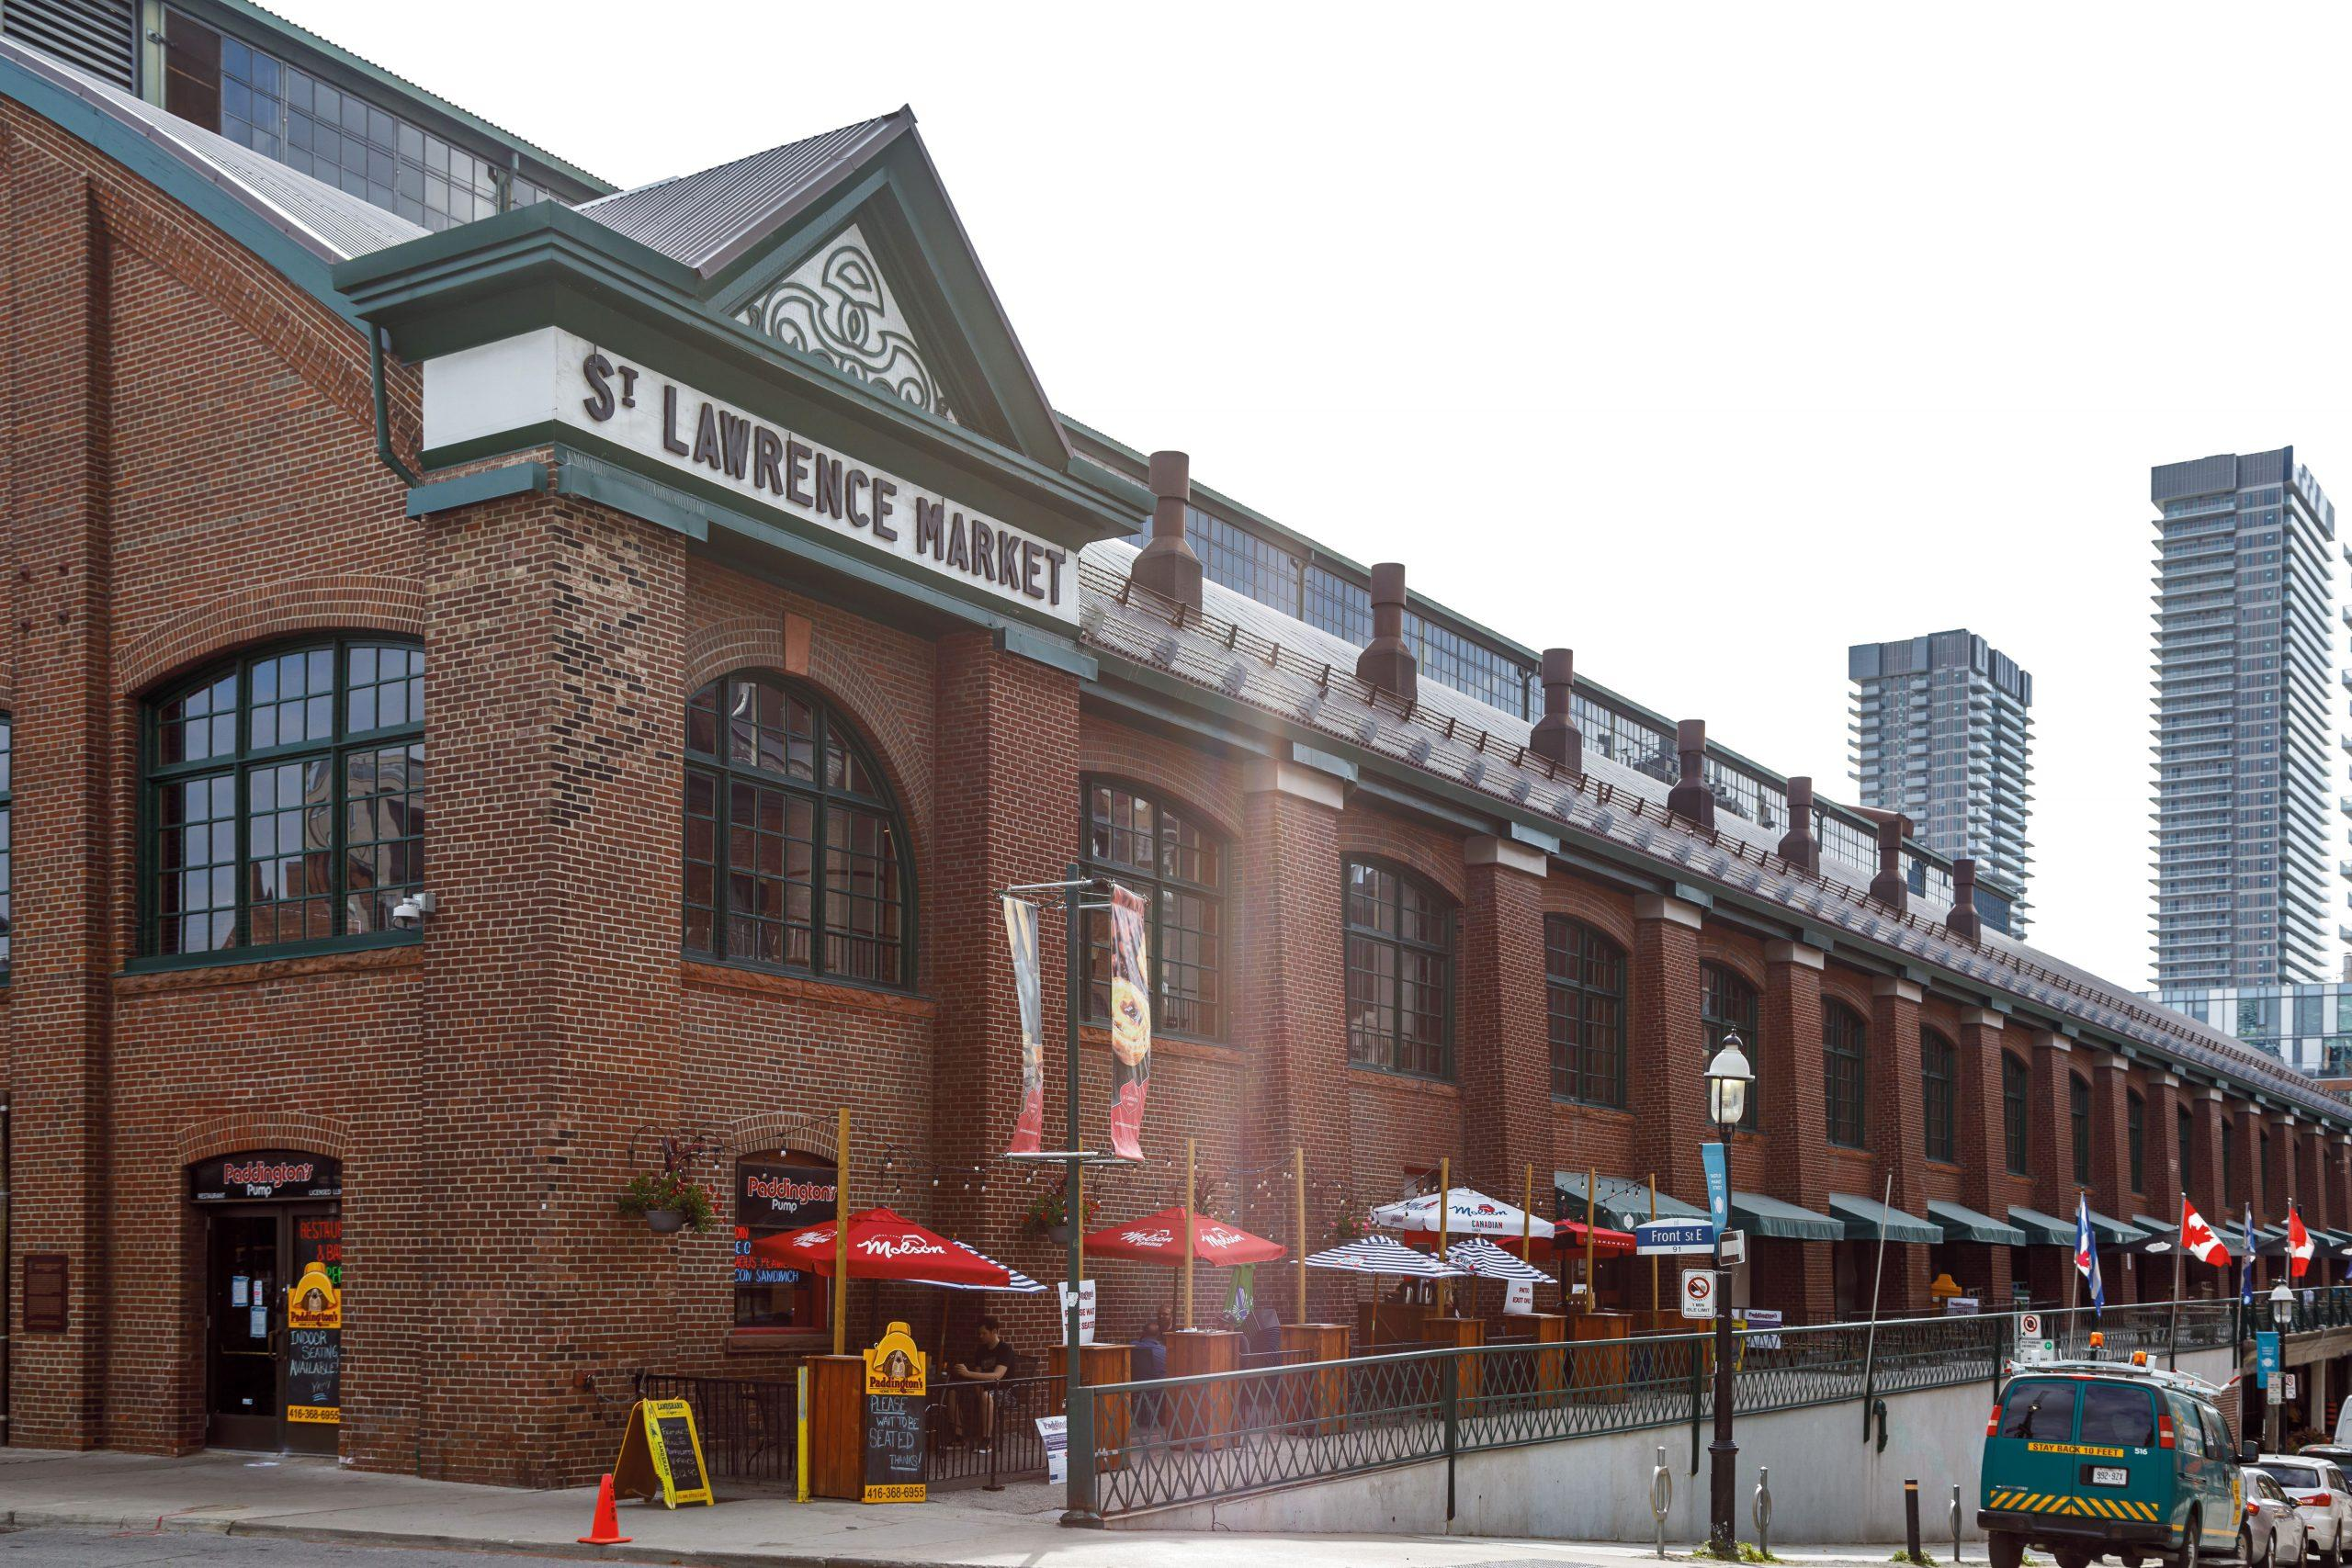 St. Lawrence Market: Supporting Small Businesses and Feeding the Community